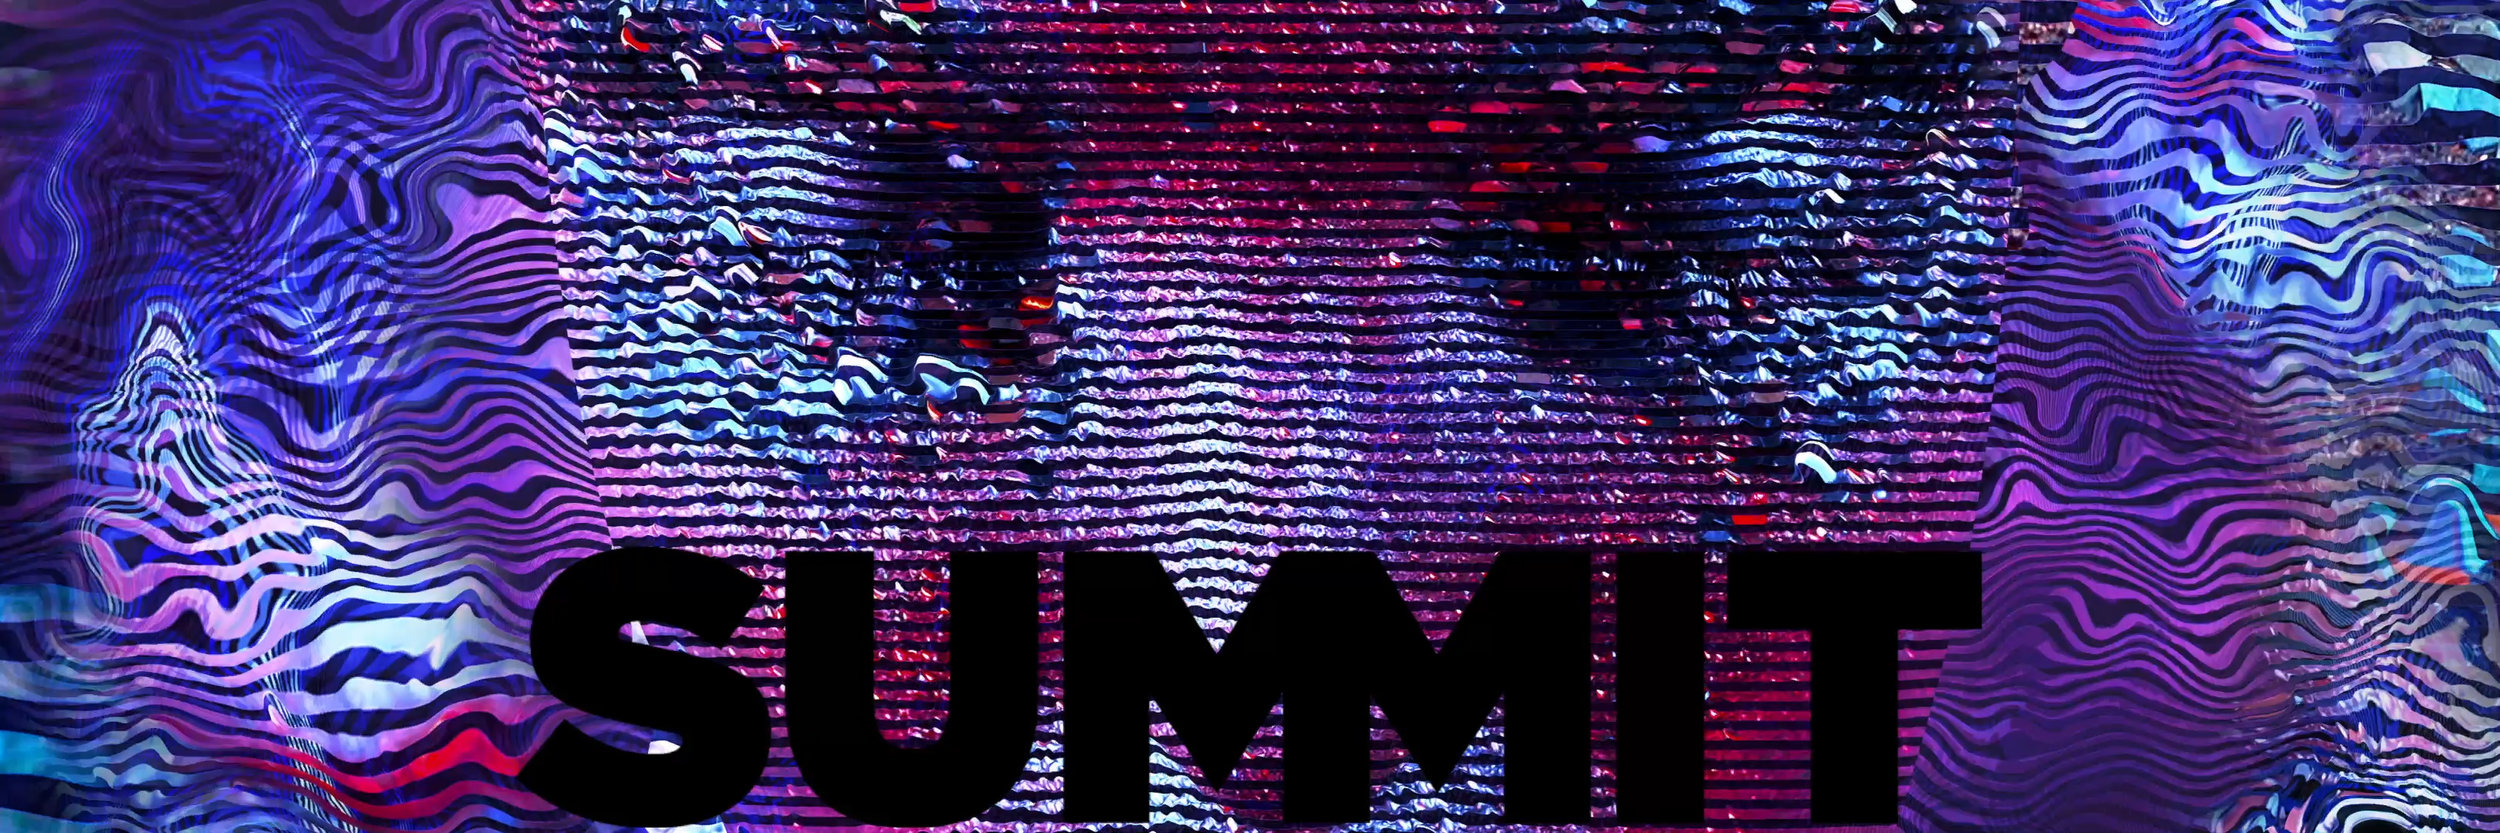 Adobe_Summit2016_Open_MASTER_3-1_1.mp4.00_01_32_22.Still001.jpg